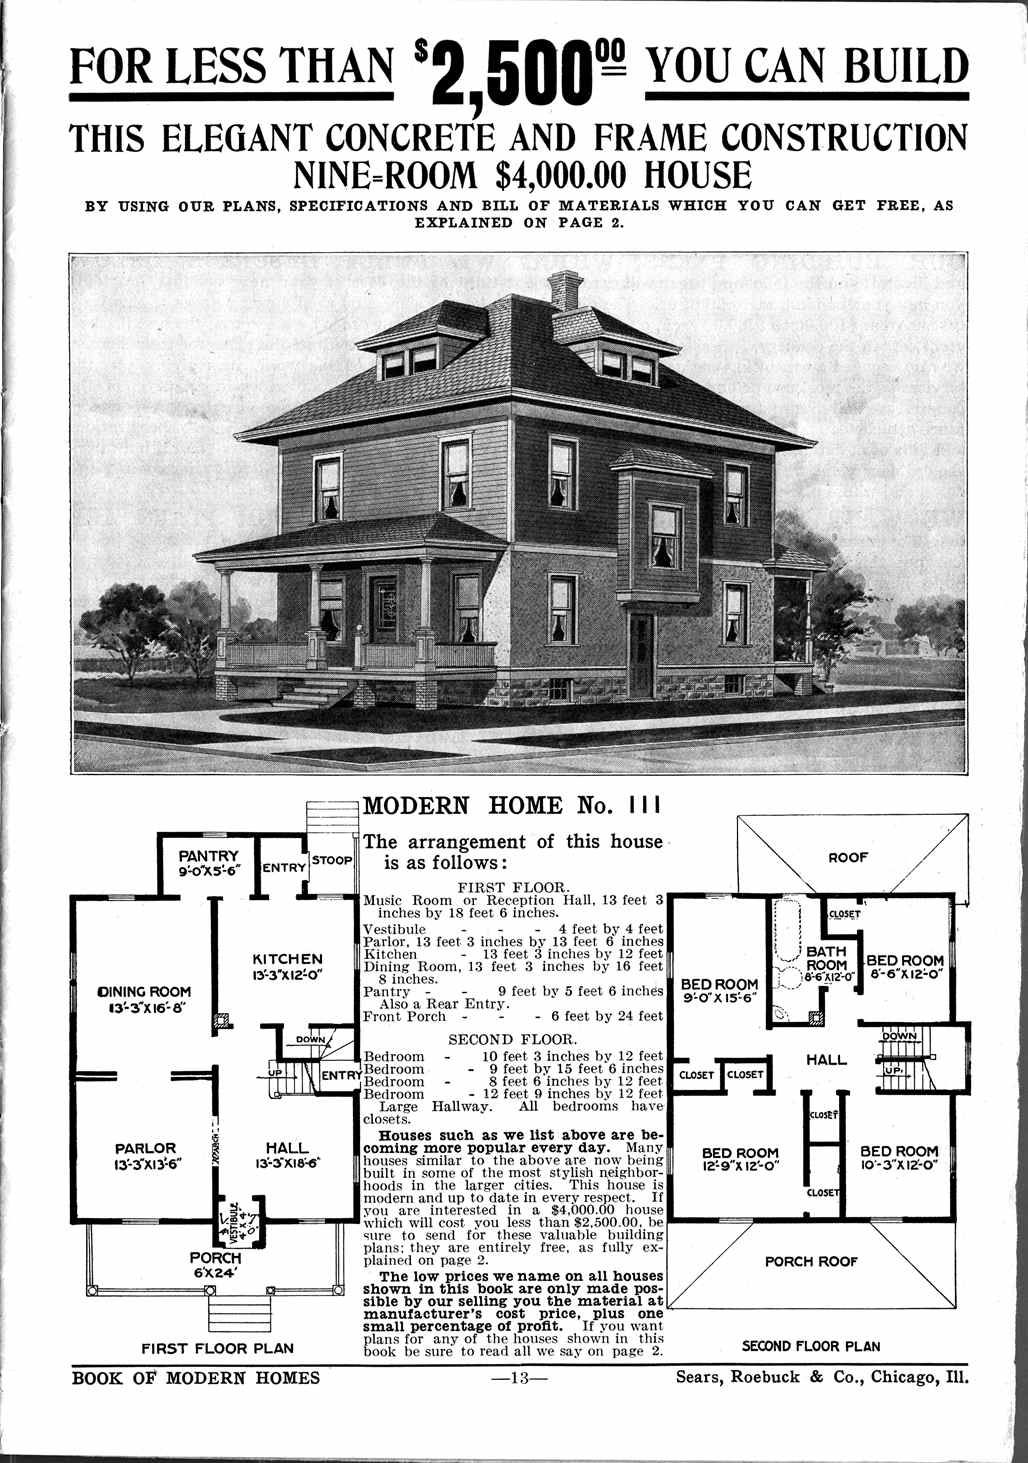 Sears Catalog Kit Homes From The Early 20th Century Square House Plans Four Square Homes Sears Catalog Homes